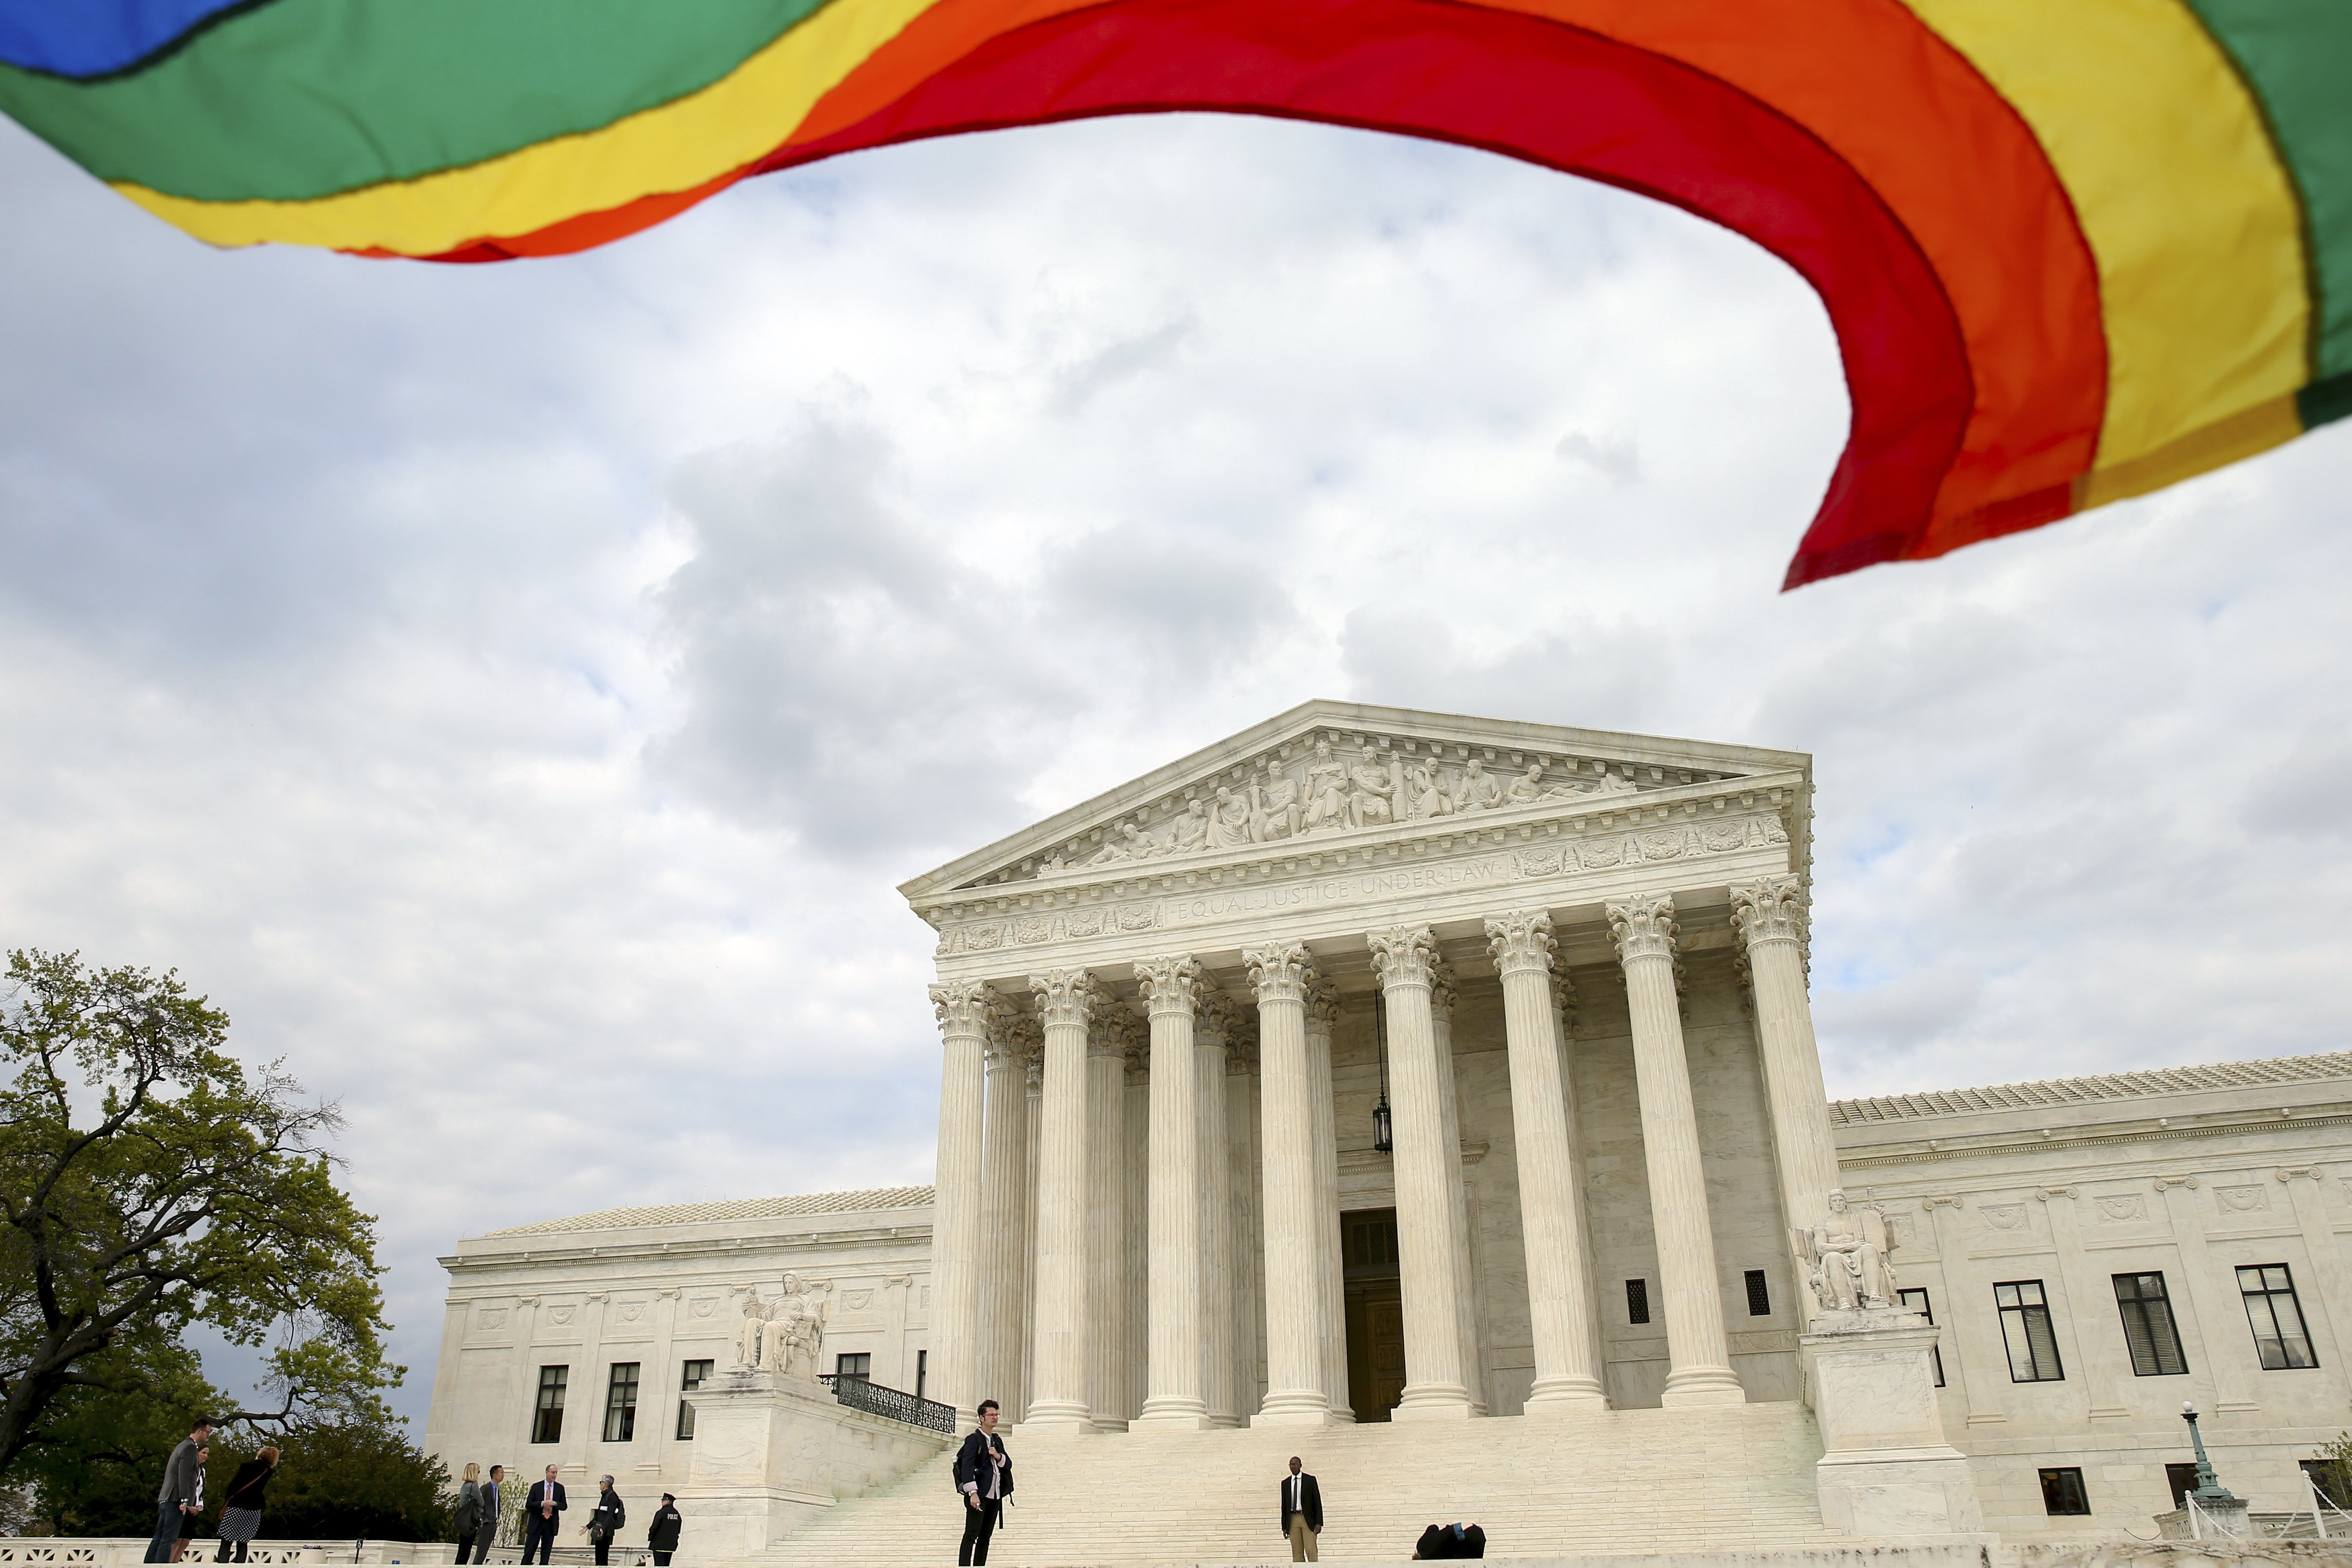 A rainbow colored flag flies in front of the Supreme Court in Washington, April 27, 2015, as the Supreme Court is scheduled to hear arguments on the constitutionality of state bans on same-sex marriage on Tuesday.